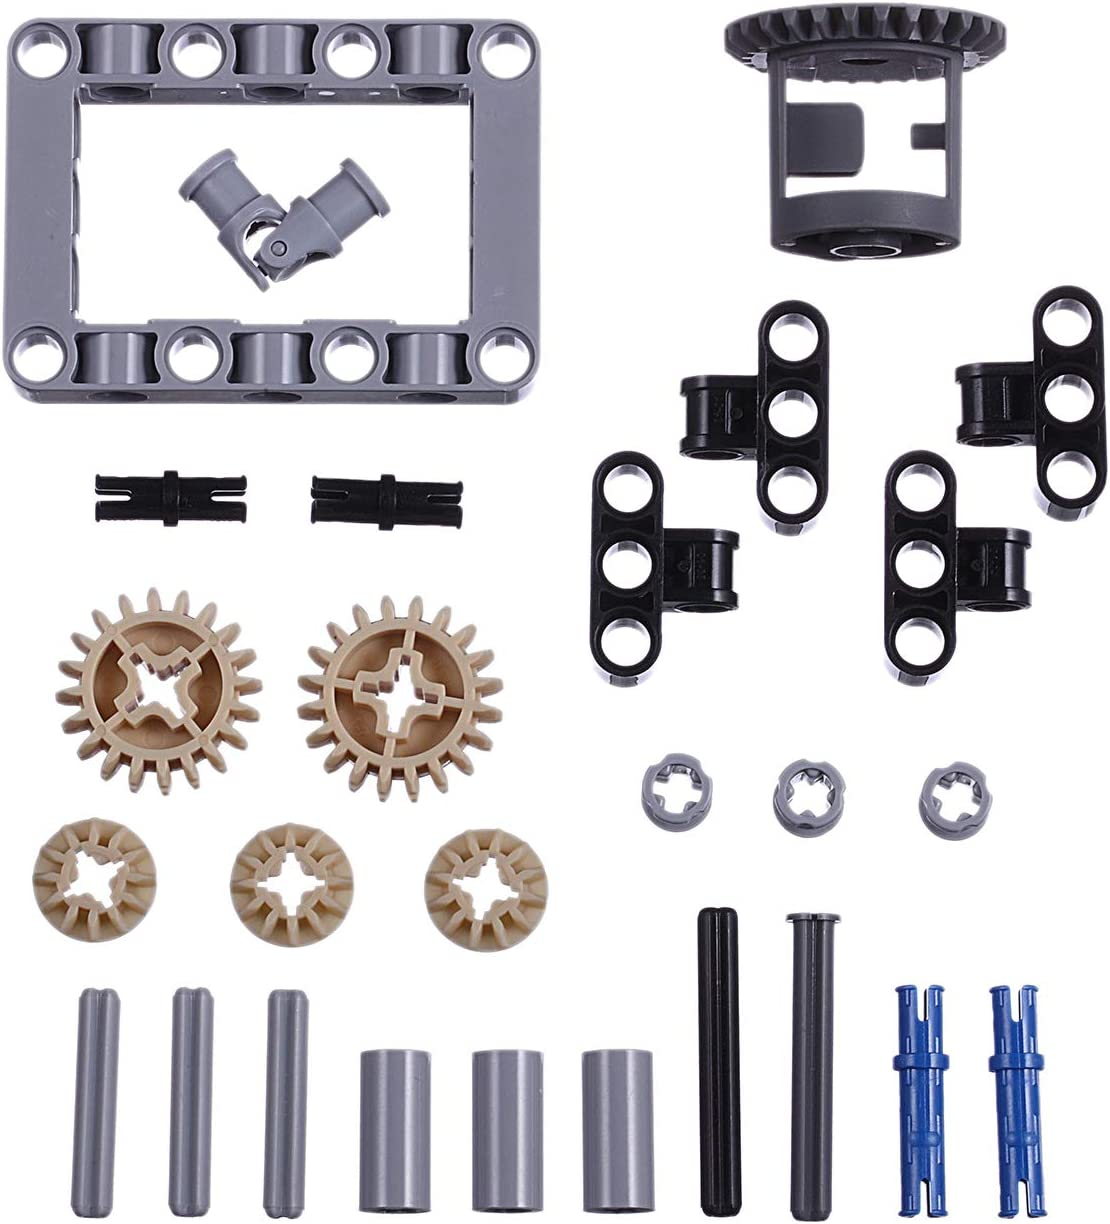 Gears, pins, axles, connectors LOONGON Technic Differential Gear Box kit 27 Pieces